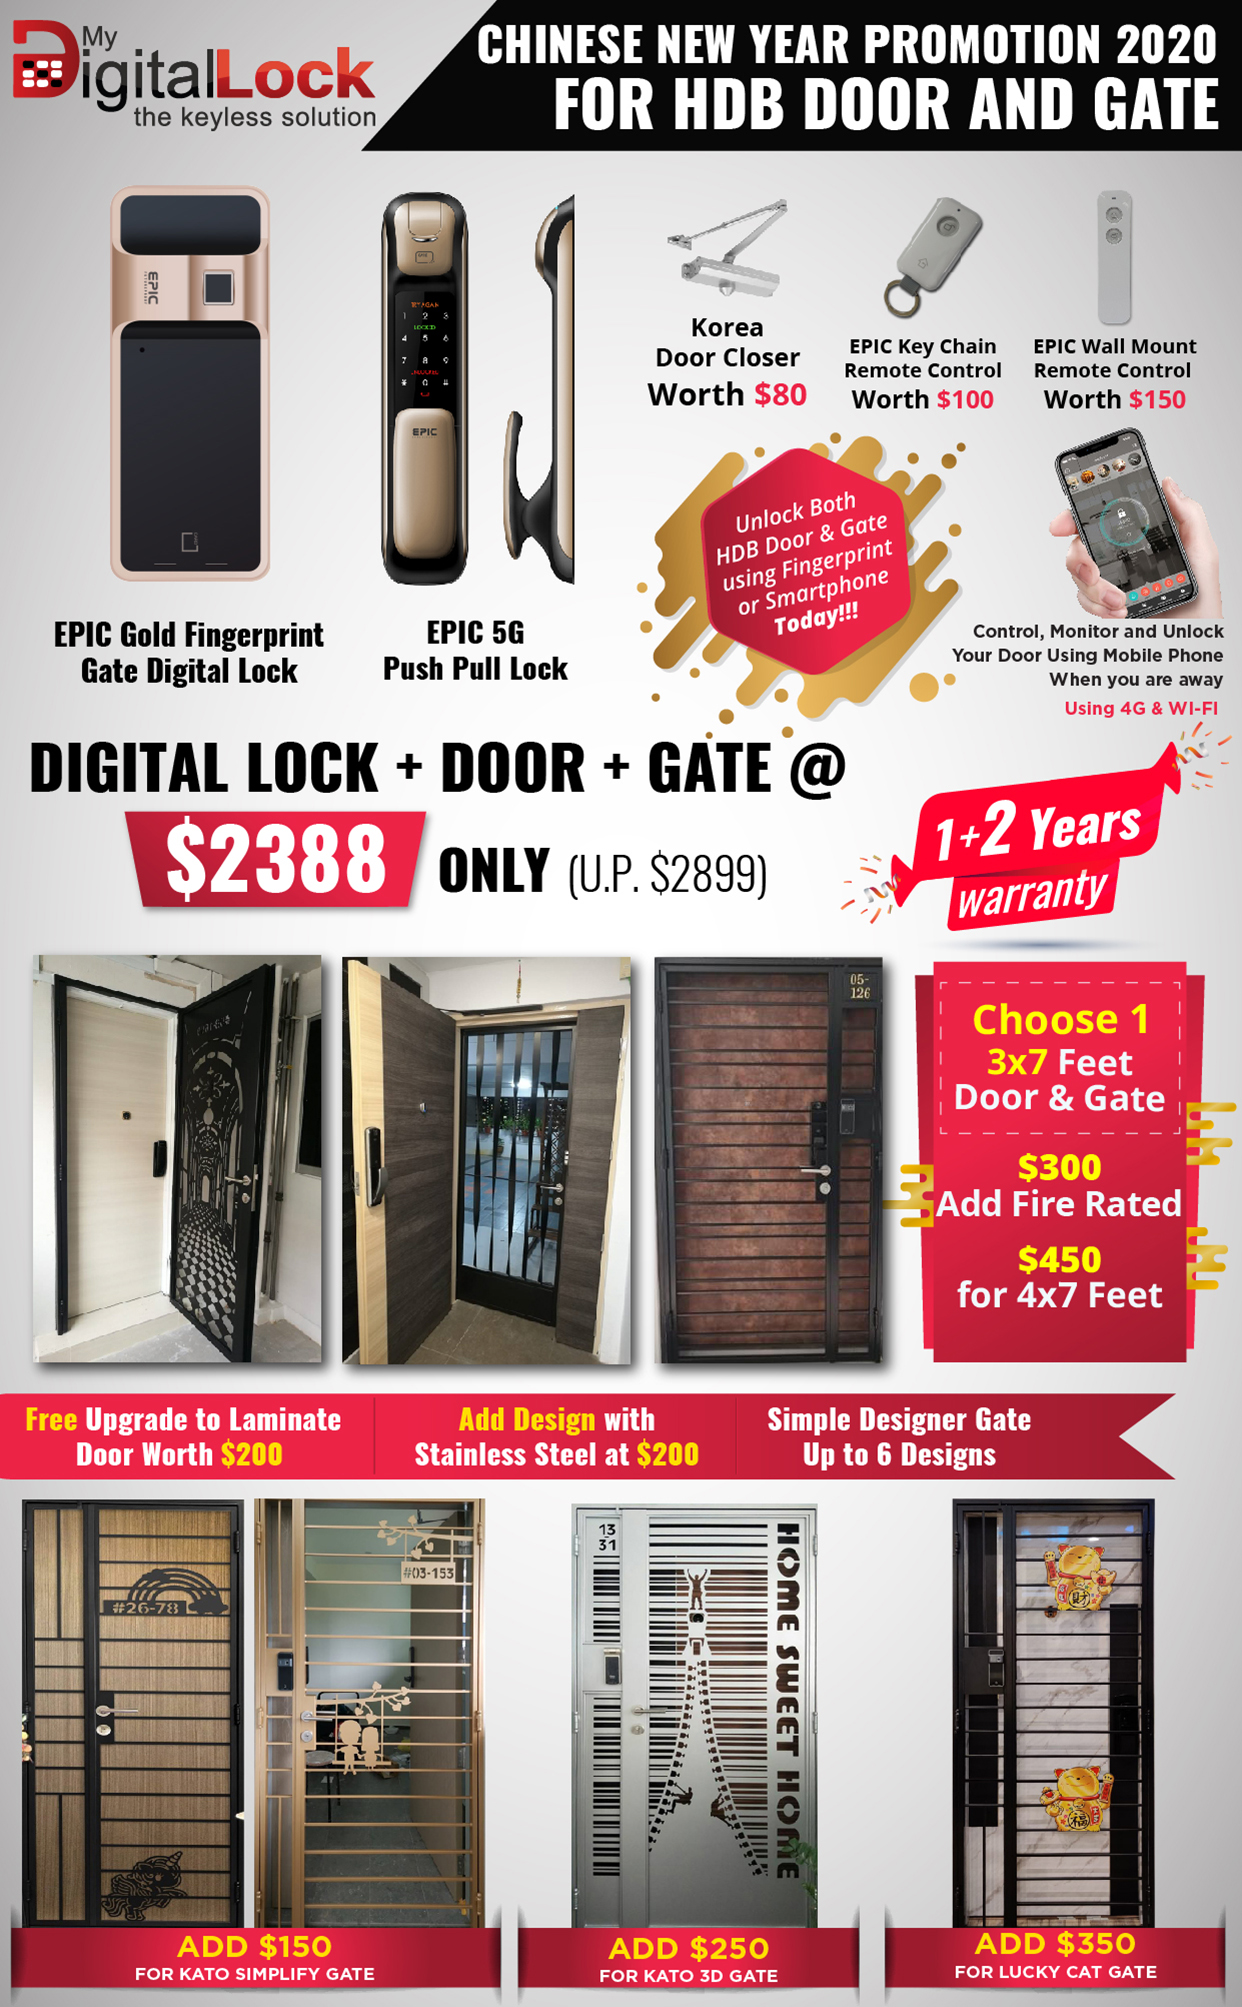 Buy EPIC digital lock @ My Digital Lock. Call 9067 7990